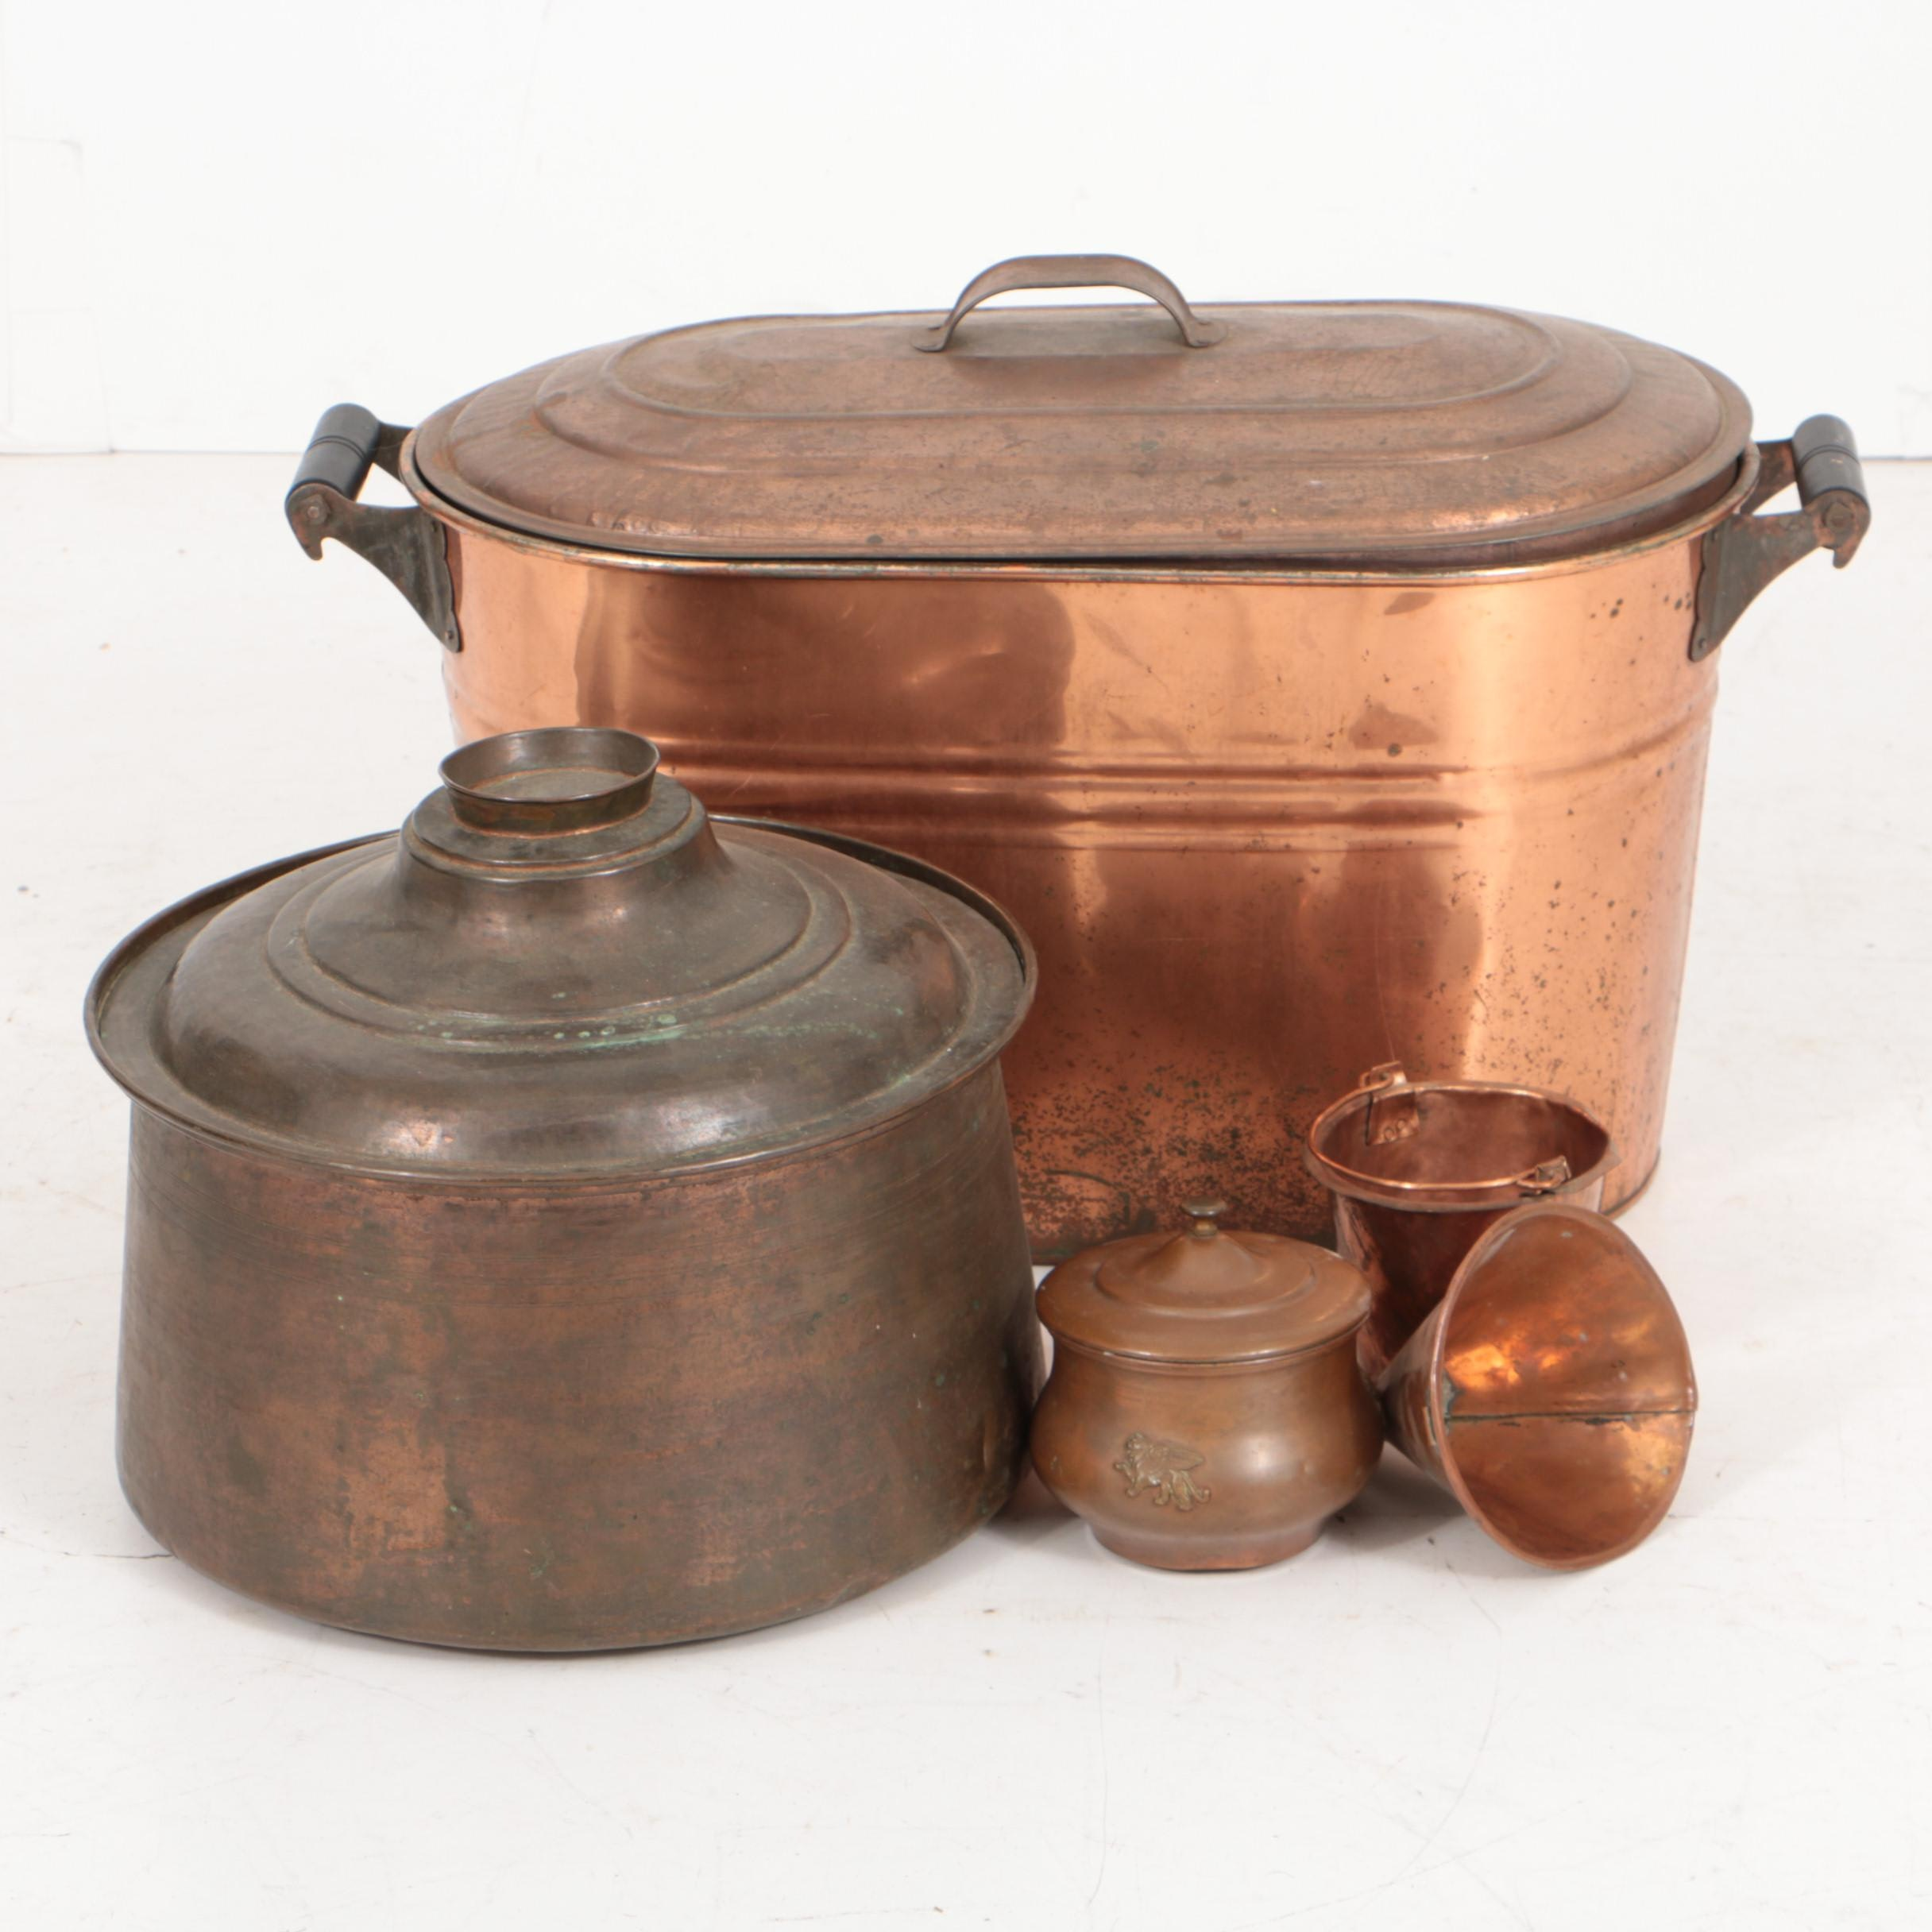 Antique Copper Wash Boiler with Other Copper Vessels